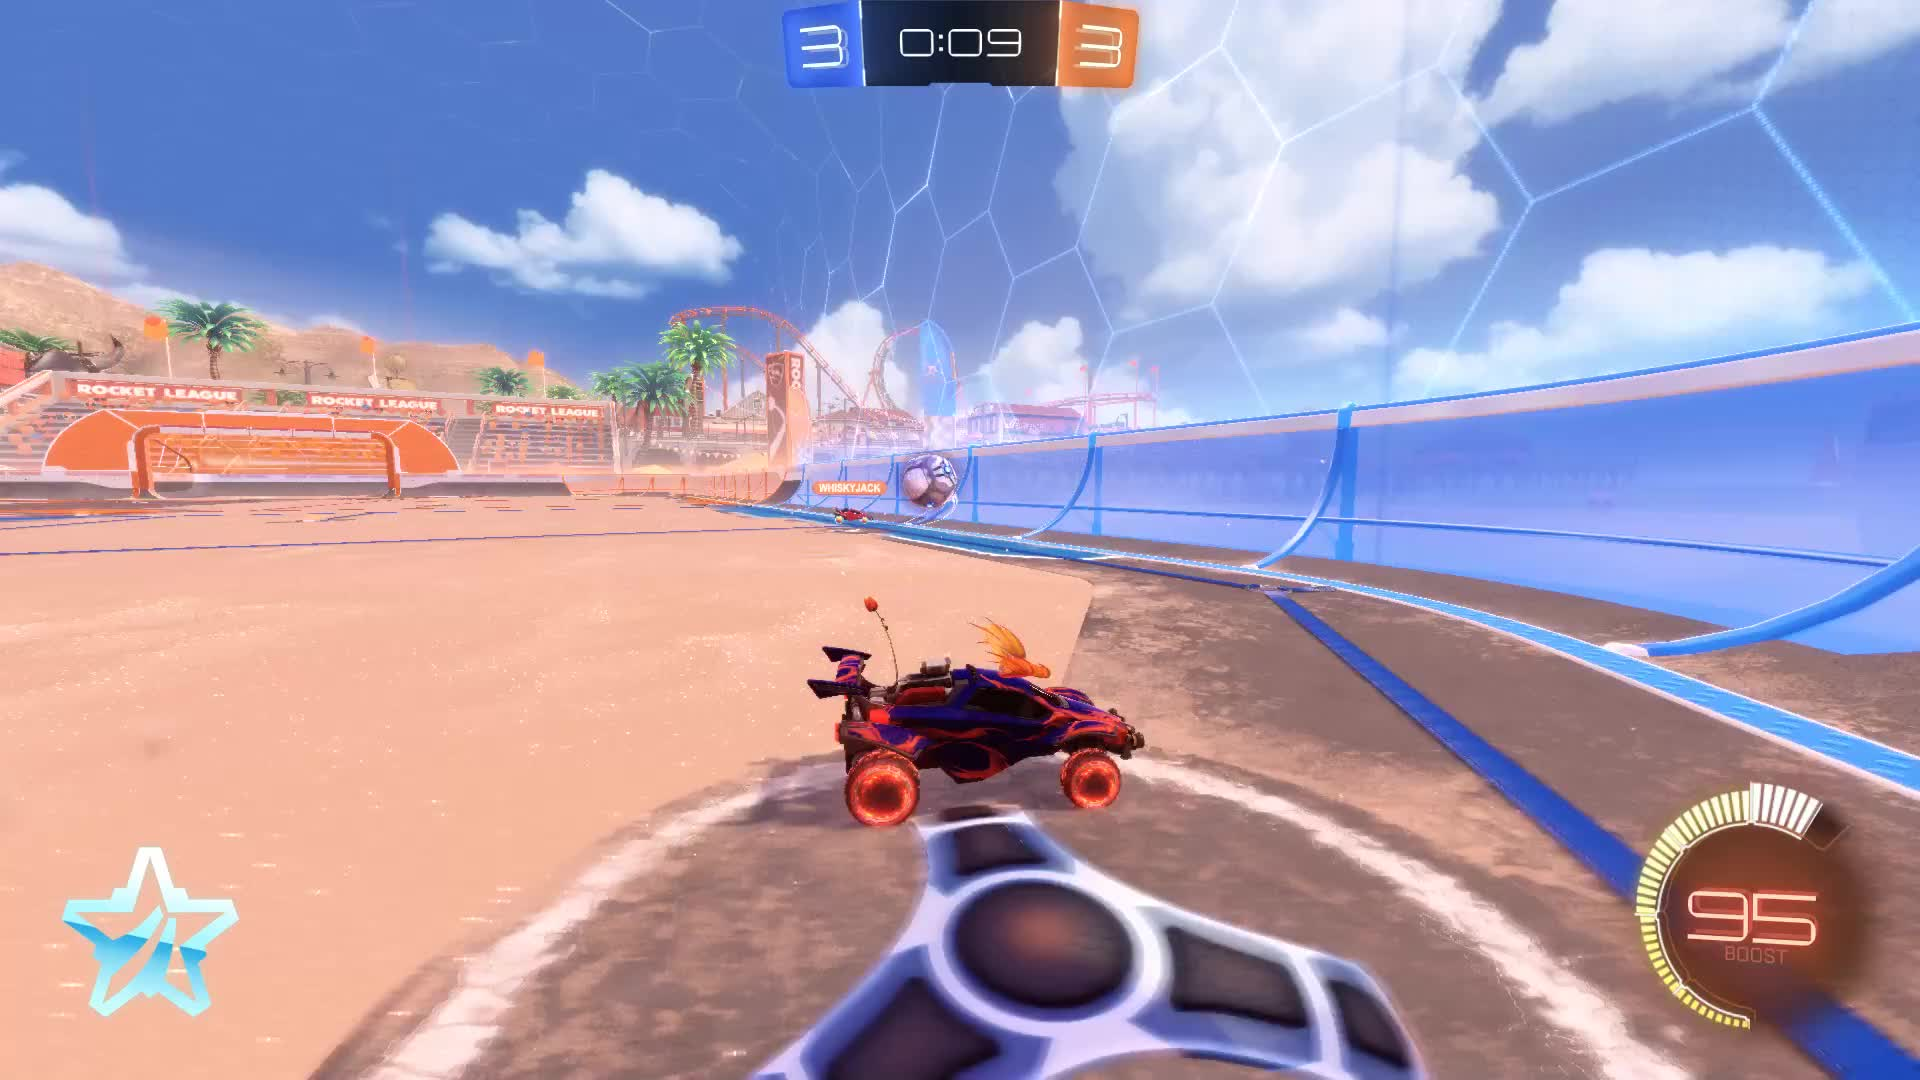 Gif Your Game, GifYourGame, Goal, ItIsK3vin, Rocket League, RocketLeague, Demo and Flick 0 Second Goal GIFs